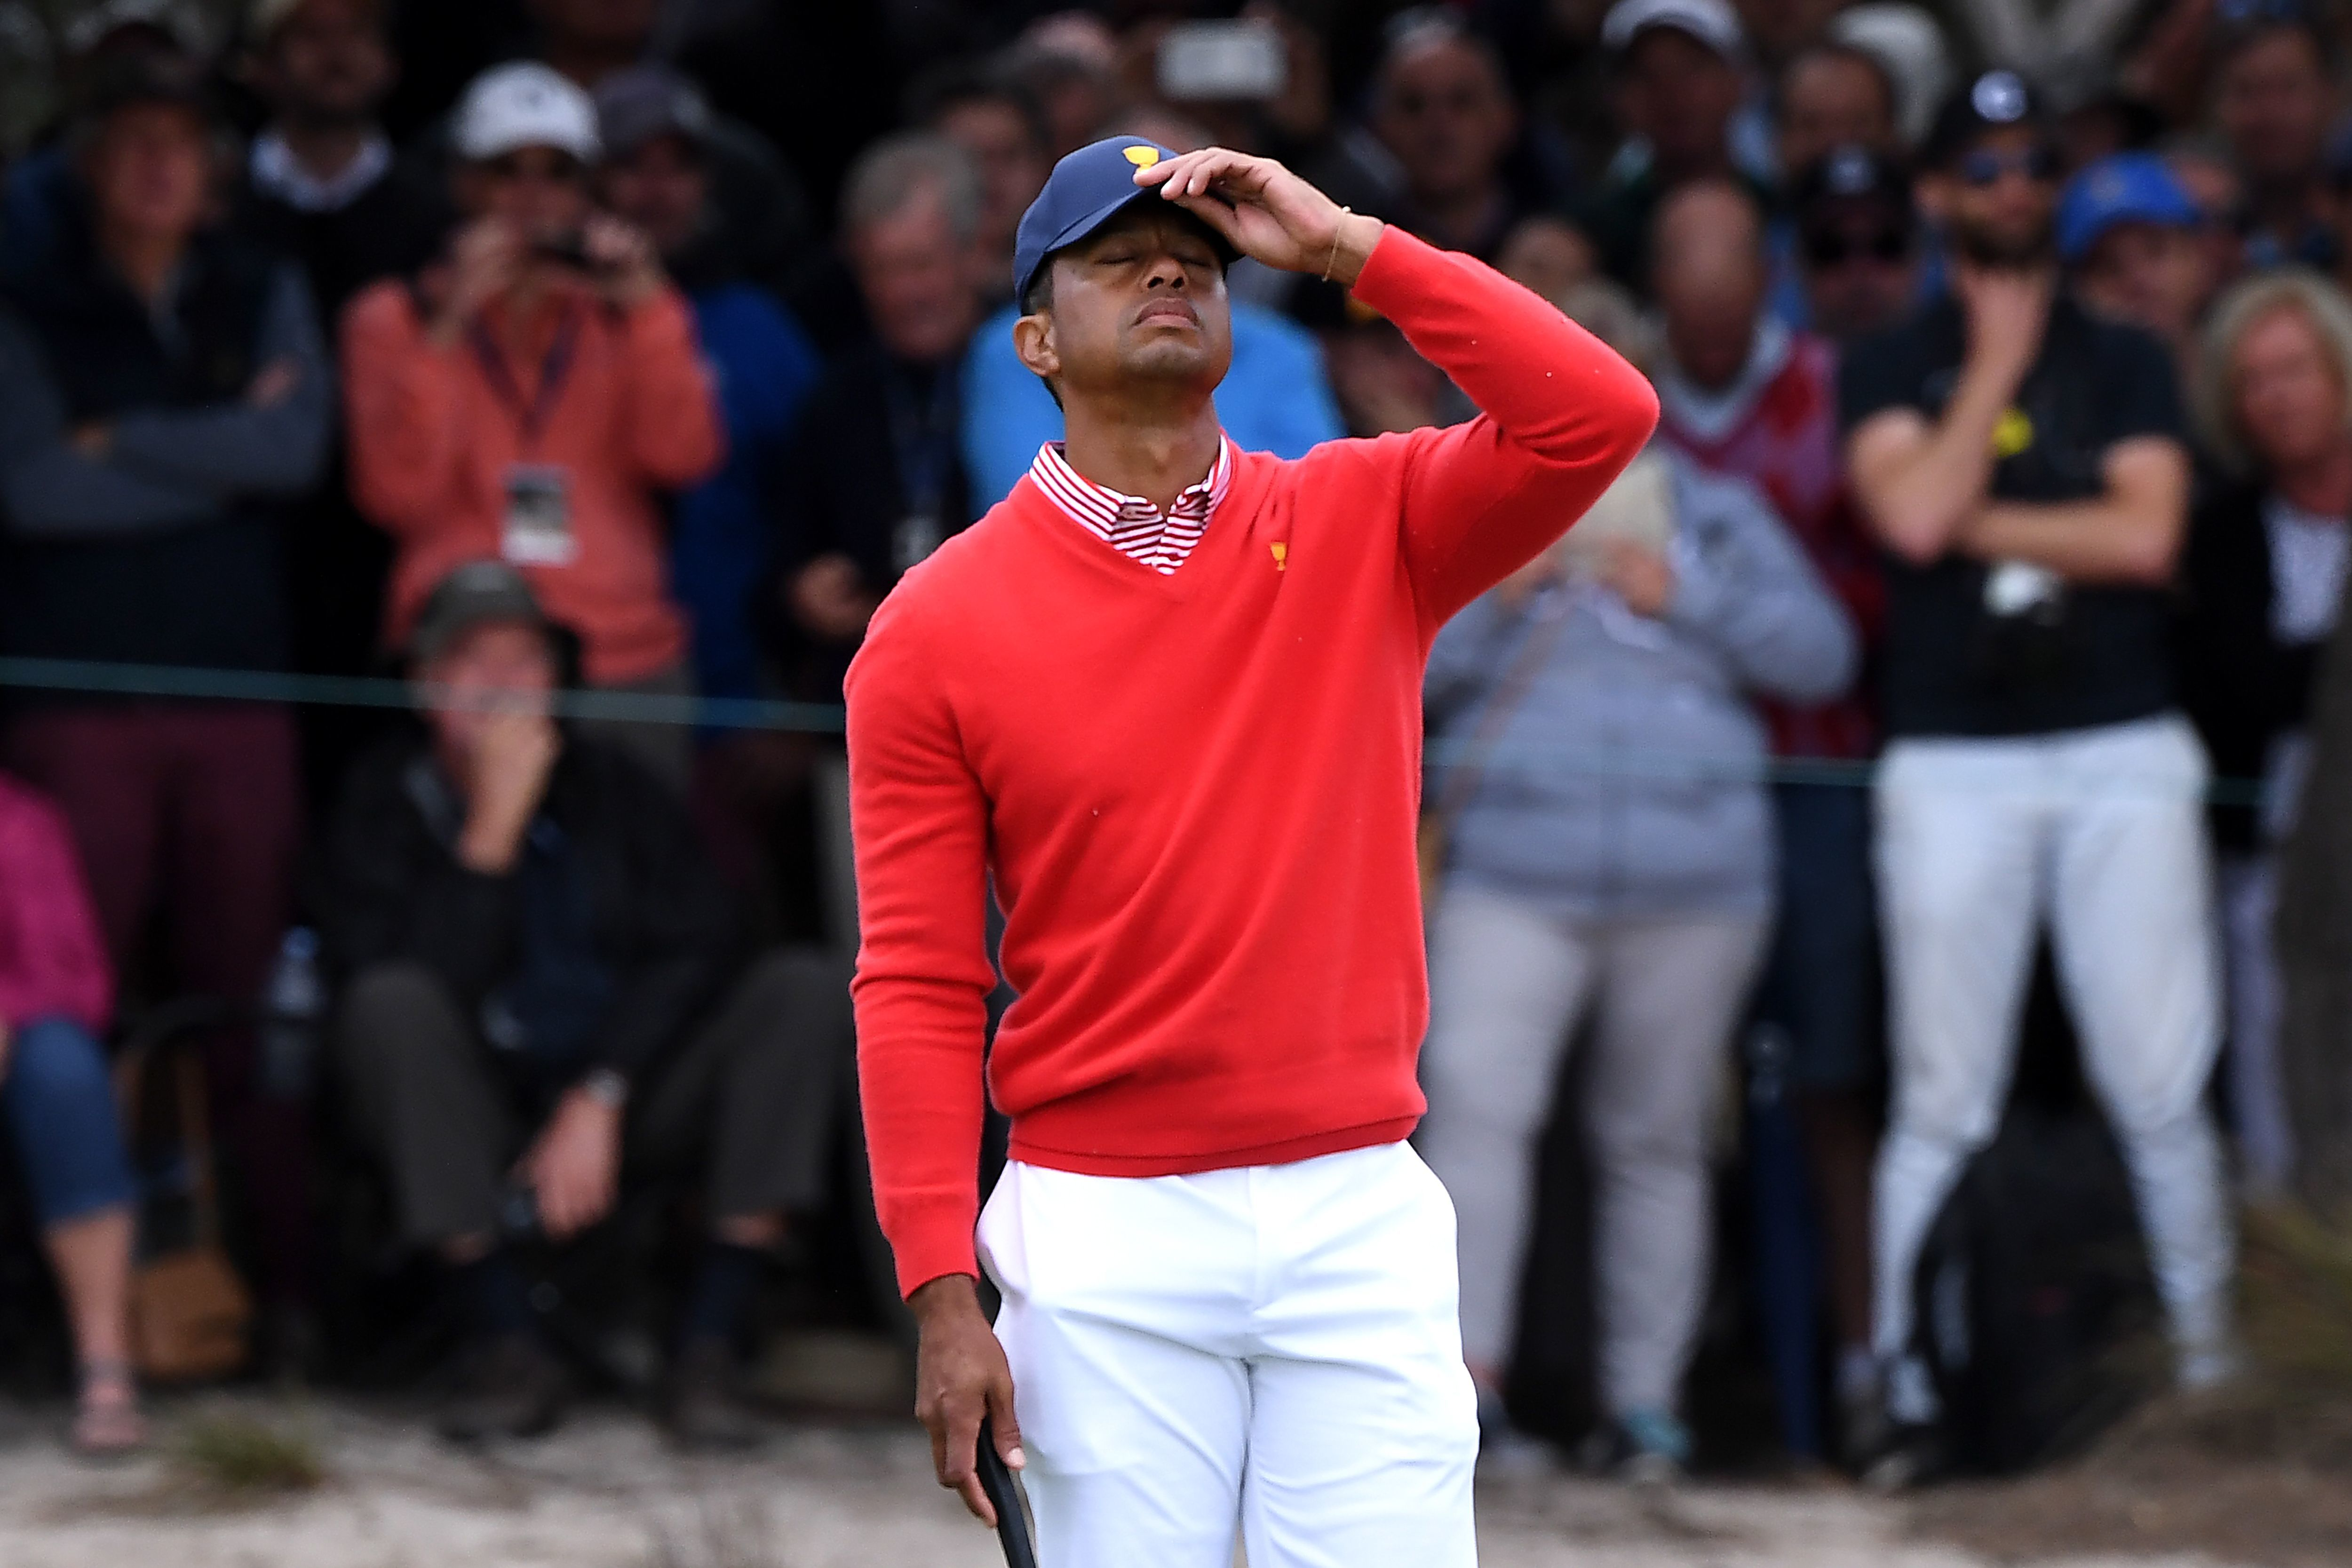 U.S. team captain Tiger Woods reacts during Day 1 of the Presidents Cup golf tournament in Melbourne, Australia.